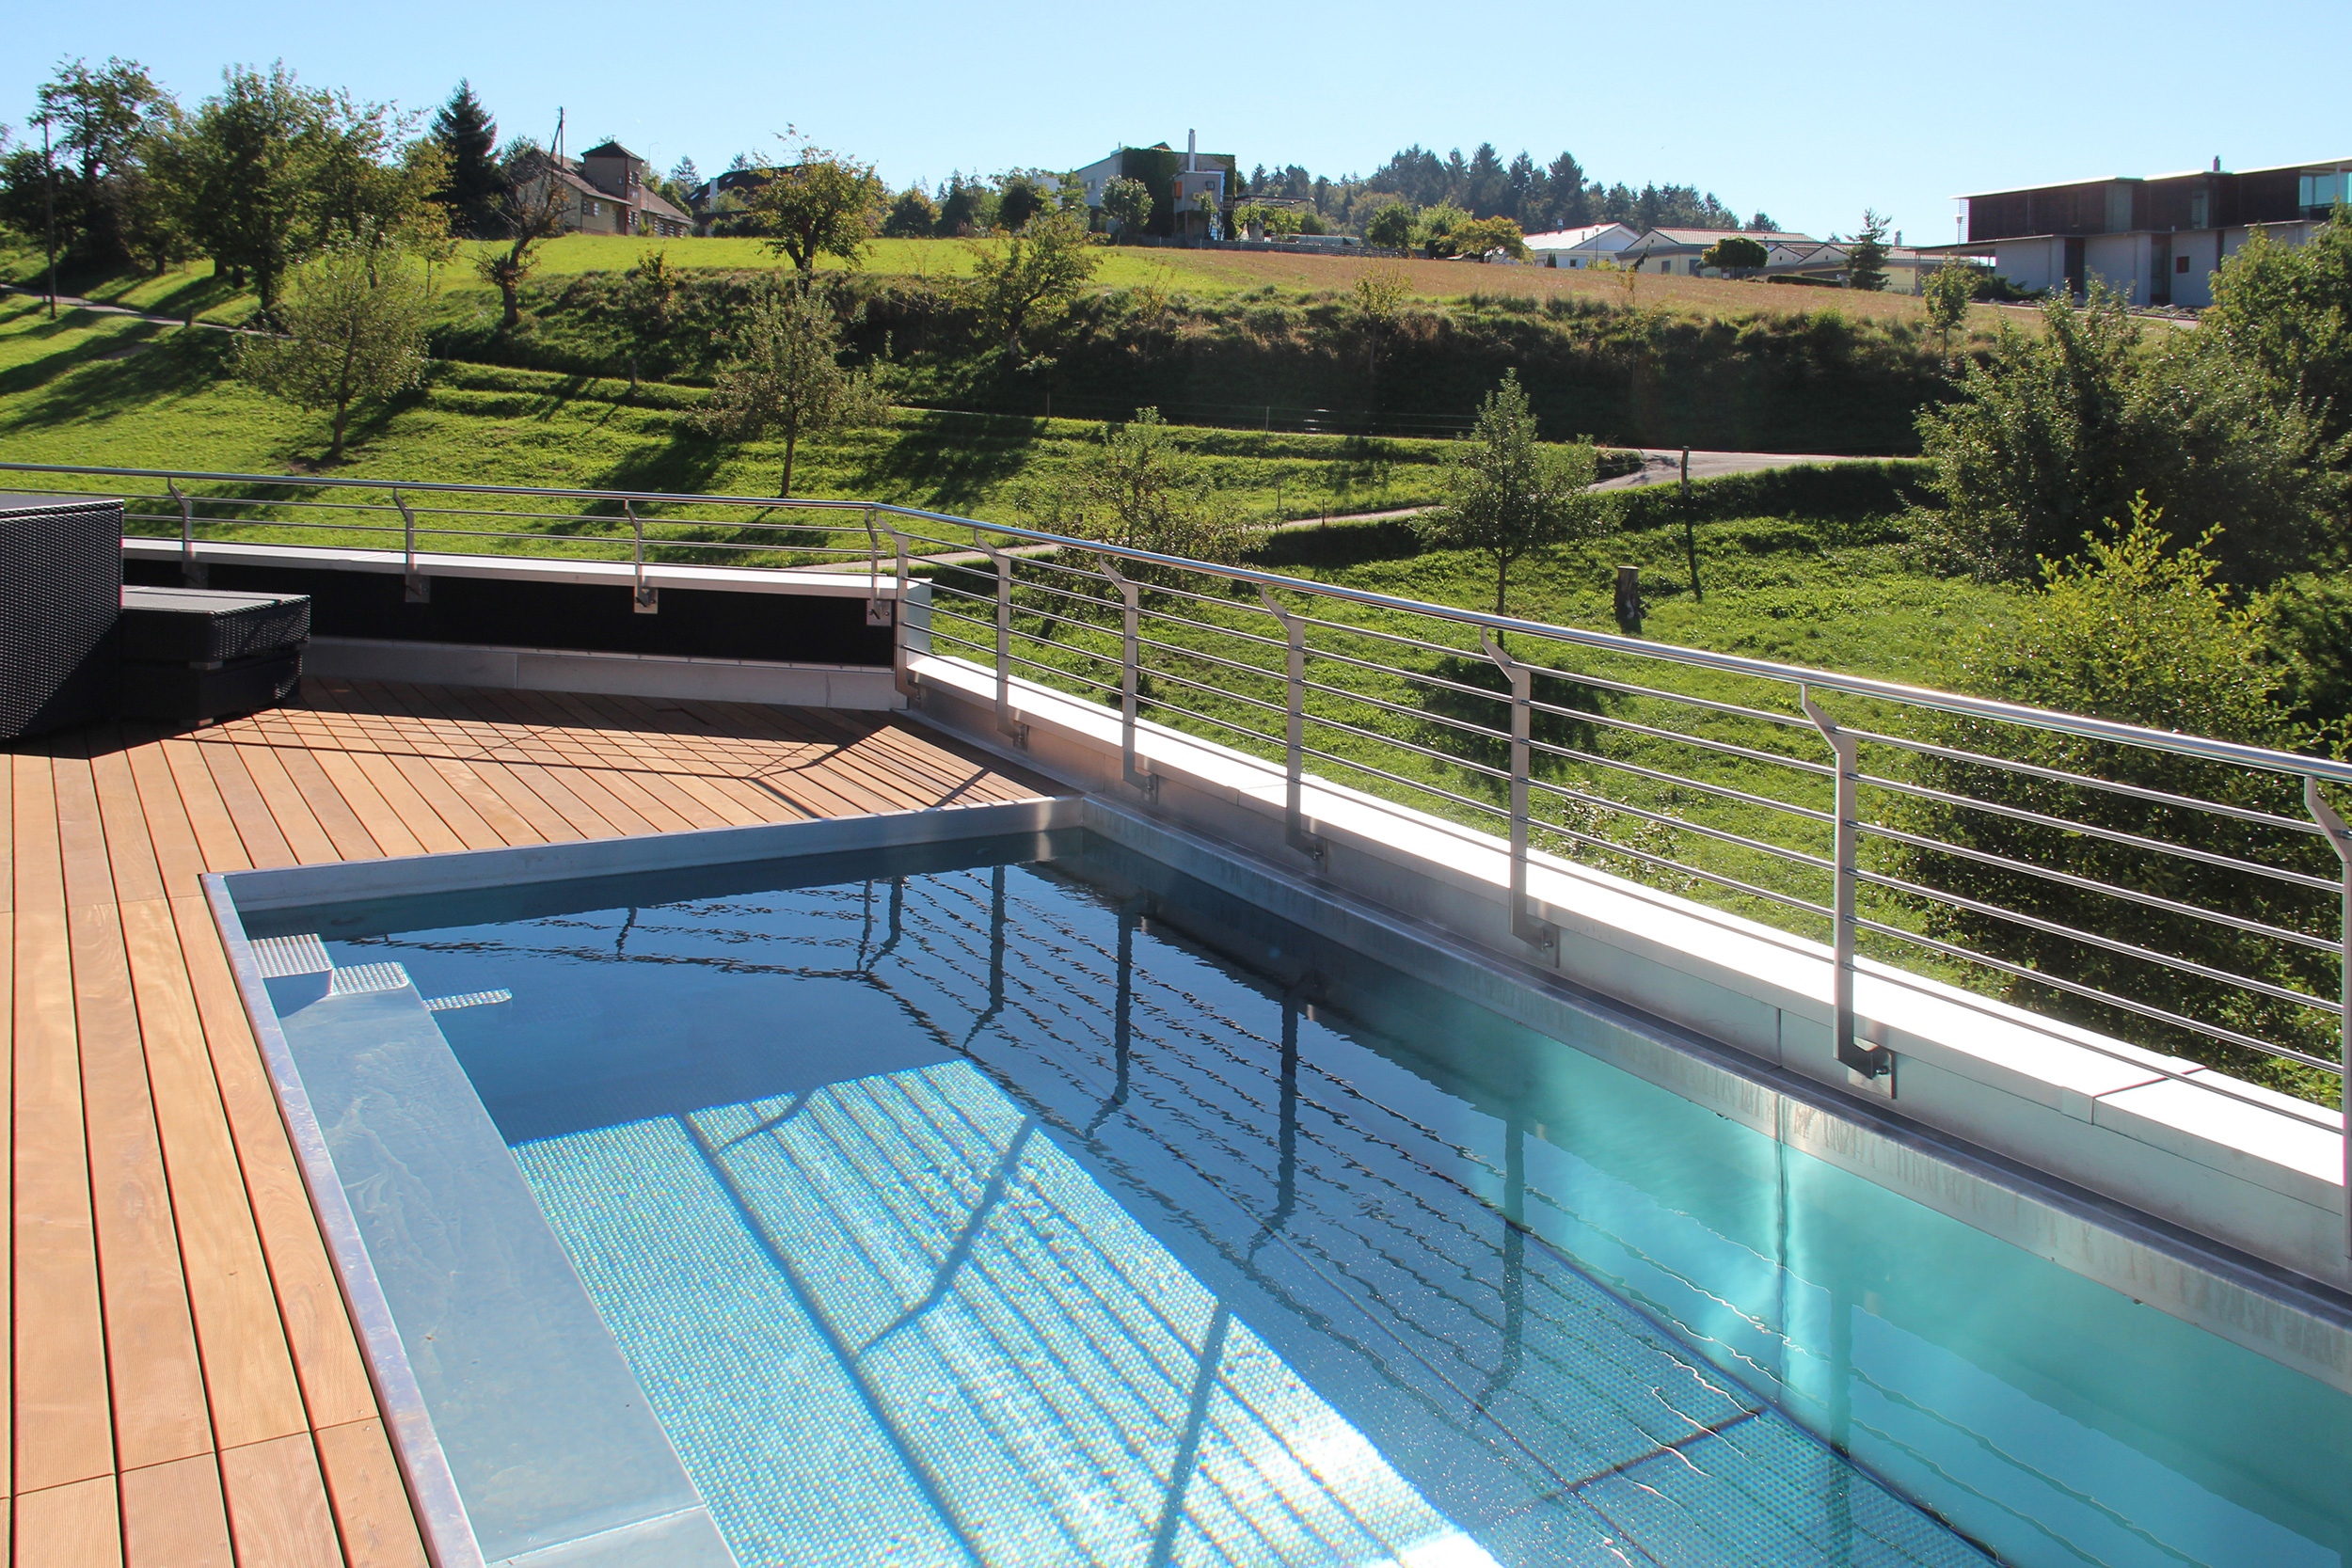 Holzterrasse Pool Pool In Terrasse Integriert Swimming Pool Mit Traumhaftem